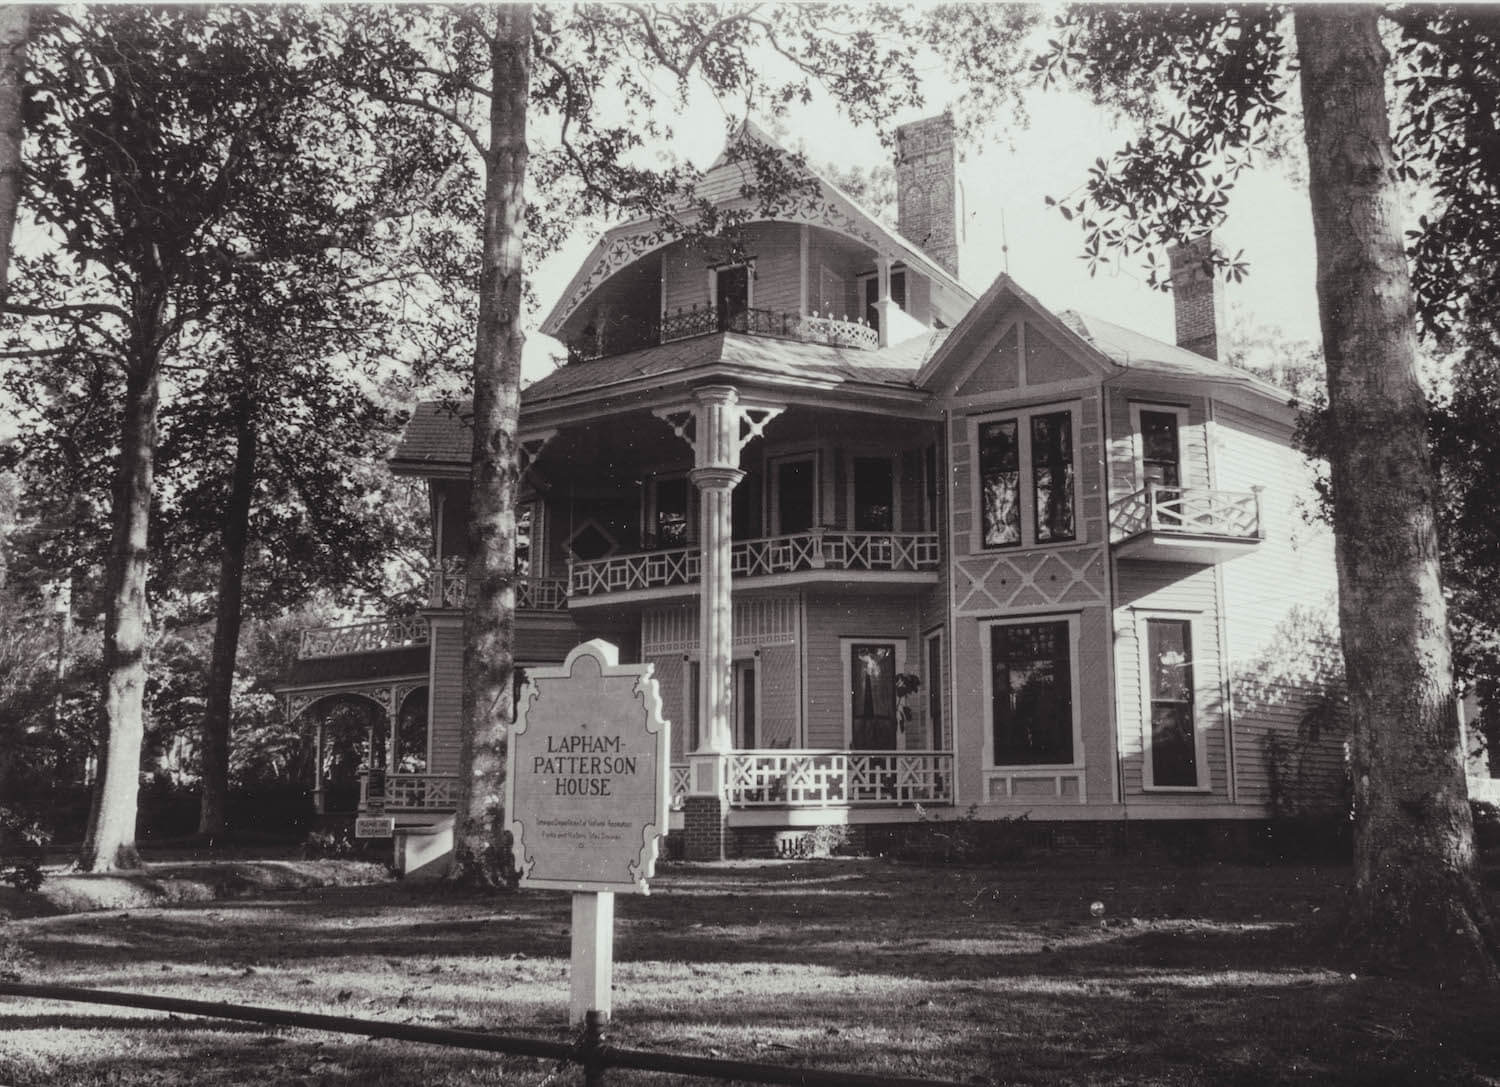 lapham-patterson-house-history-thomasville-history-center